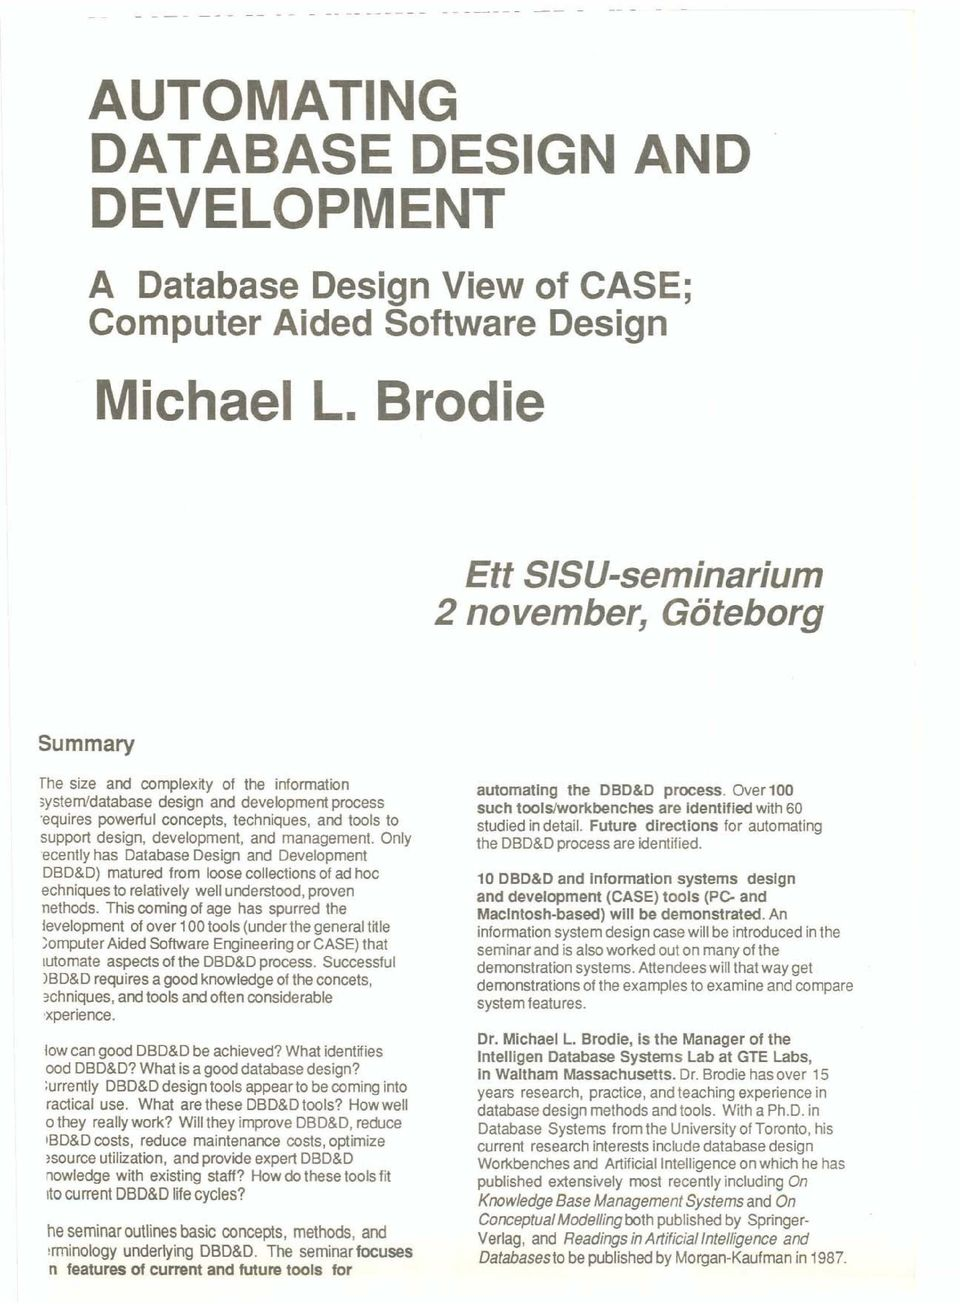 support design, development, and management. Only ecenlly has Database Design and Development DBD&D) matured from loose collectians of ad hoc echniques to relatively weil understood, proven nethods.